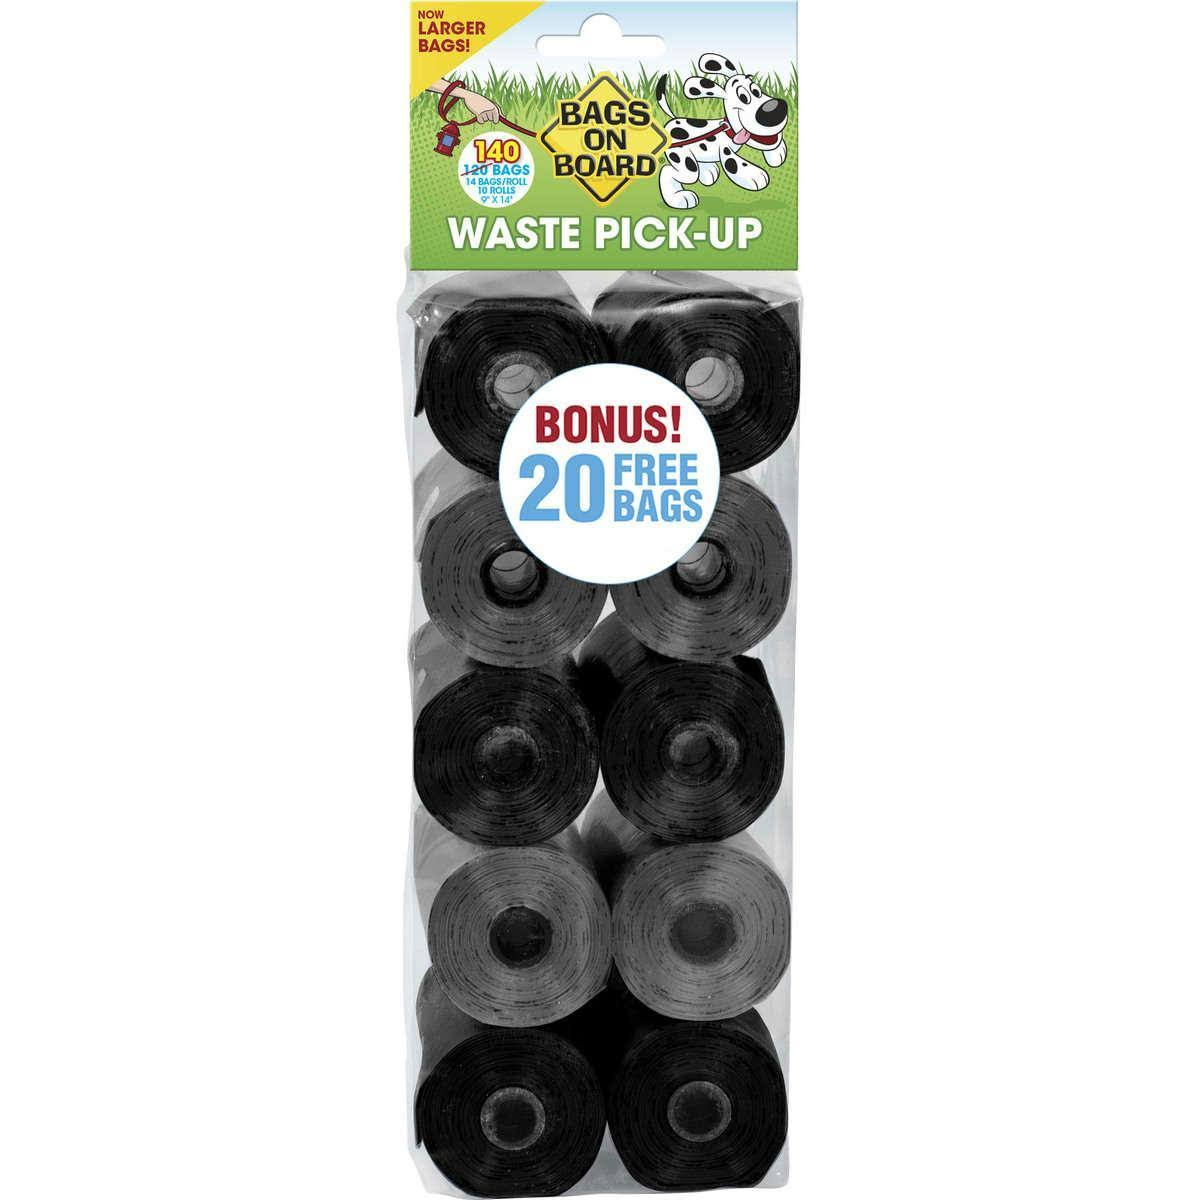 Bags on Board Waste Pick-Up Refill Bags - 140 Count, Black and Grey